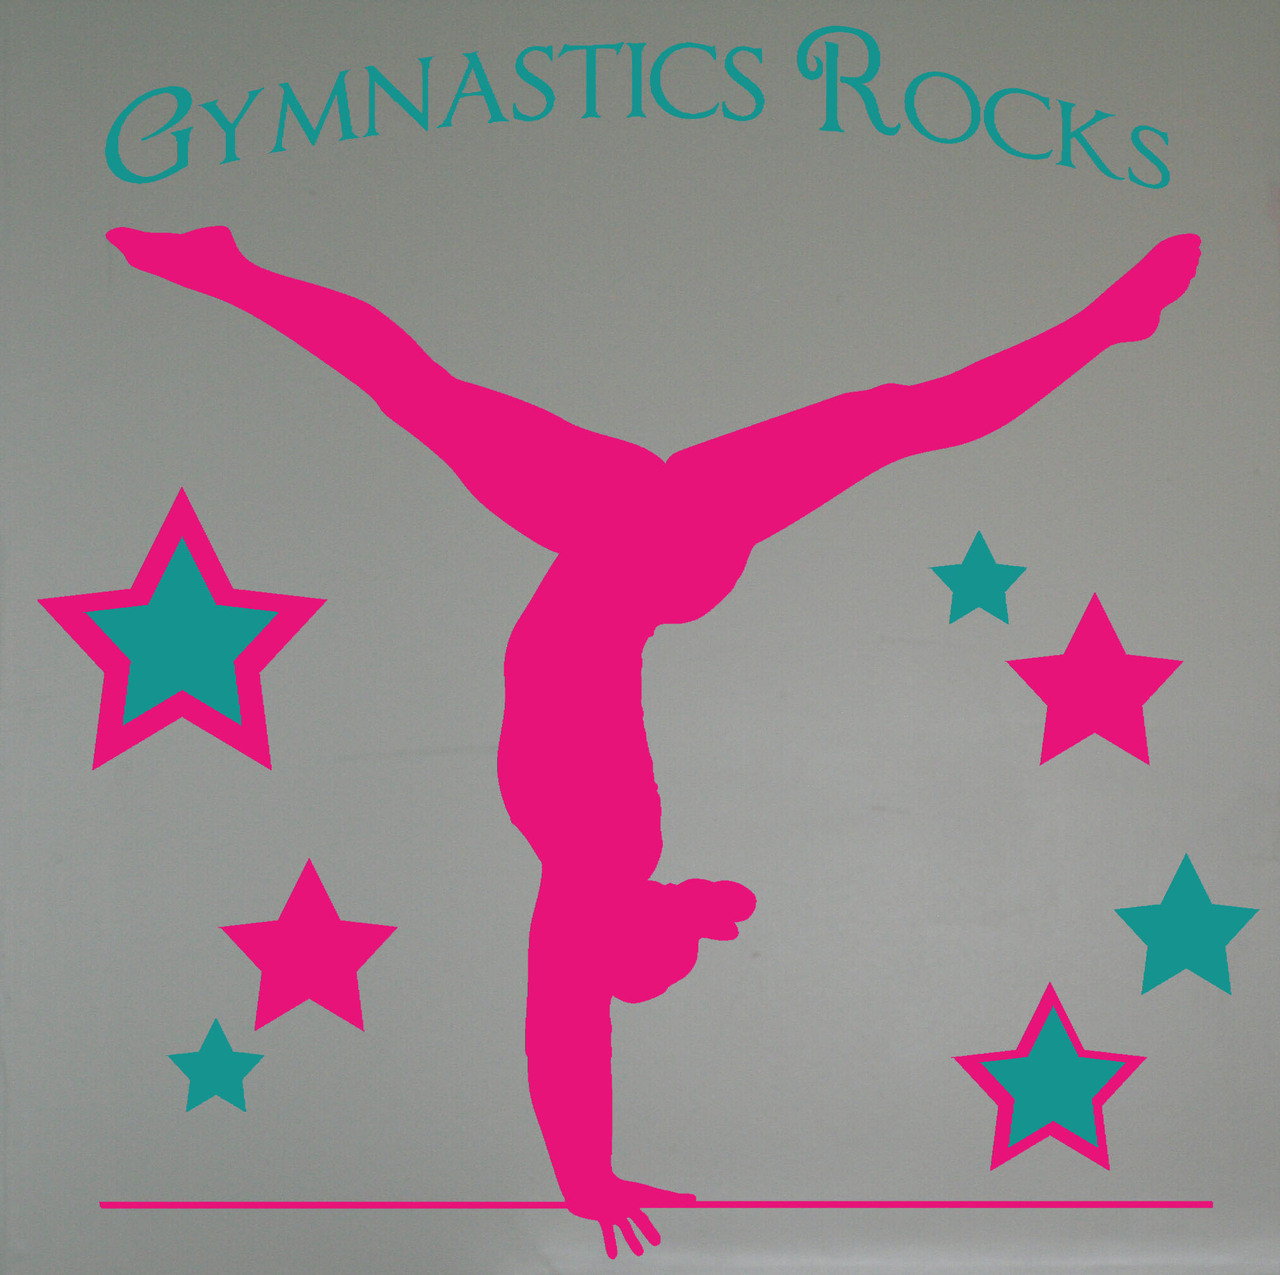 Charmant Balancing Gymnast Silhouette And Stars With Gymnastics Rocks Girls Wall  Stickers Decals. Loading Zoom